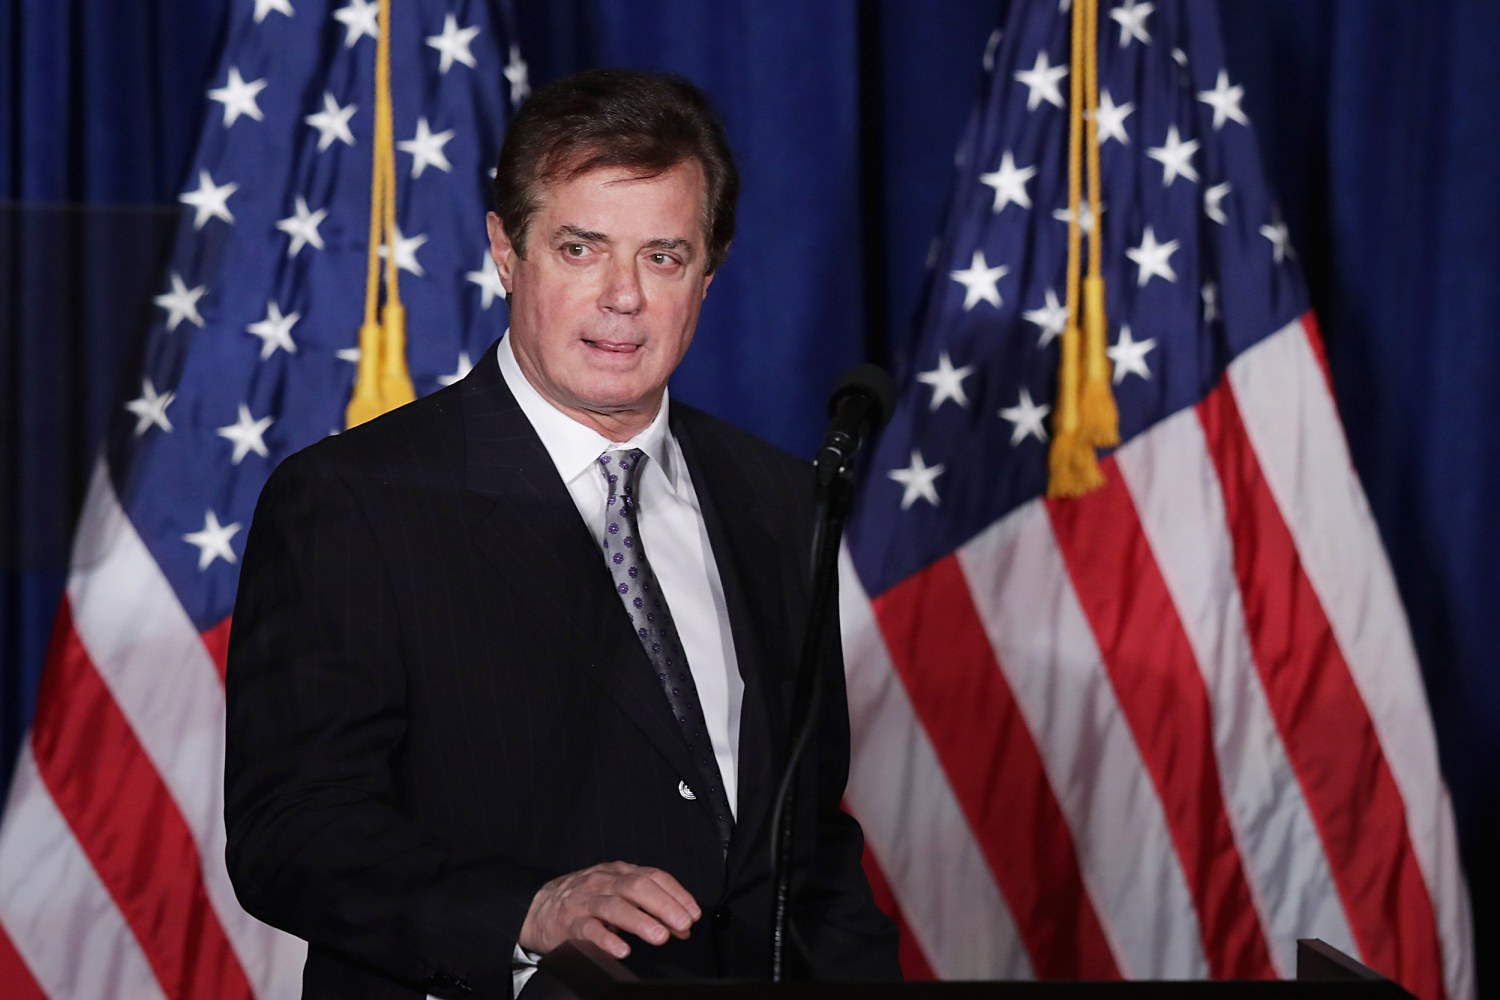 Manafort Offered To Provide 'Briefings' To Kremlin-Connected Oligarch During Campaign